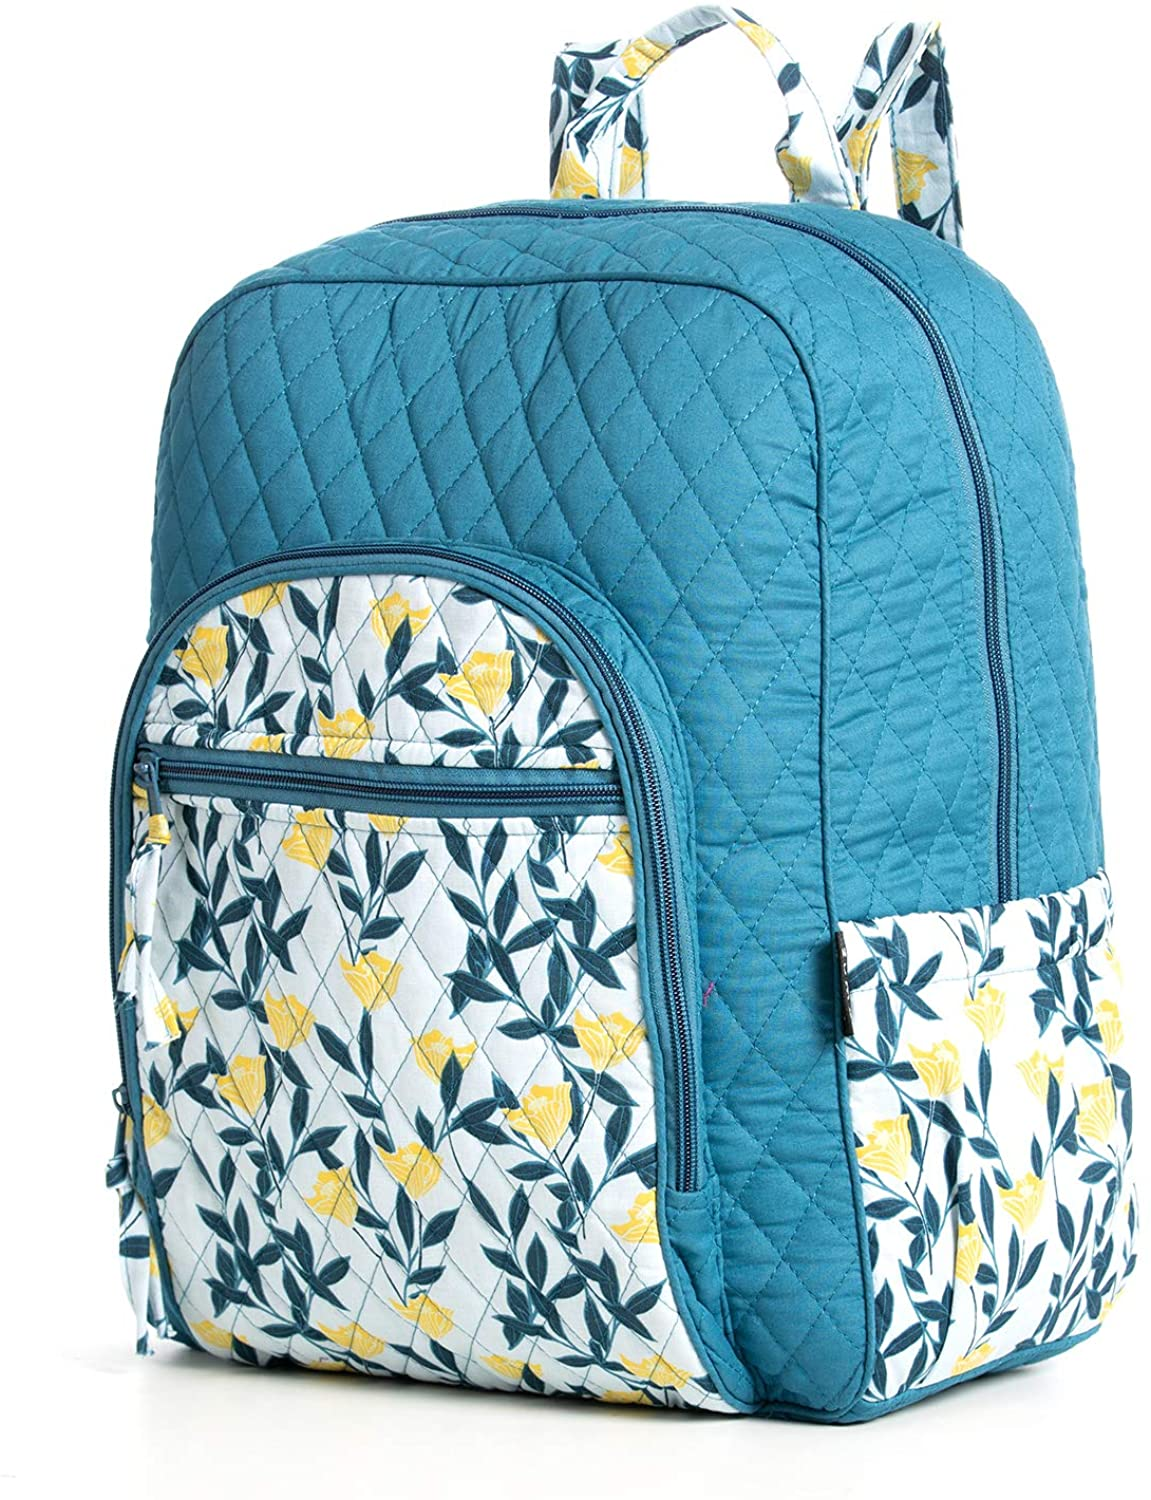 MIXCORE Cotton Lrg Backpack Lightweight Travel Backpack with U-shaped Zip Compartment